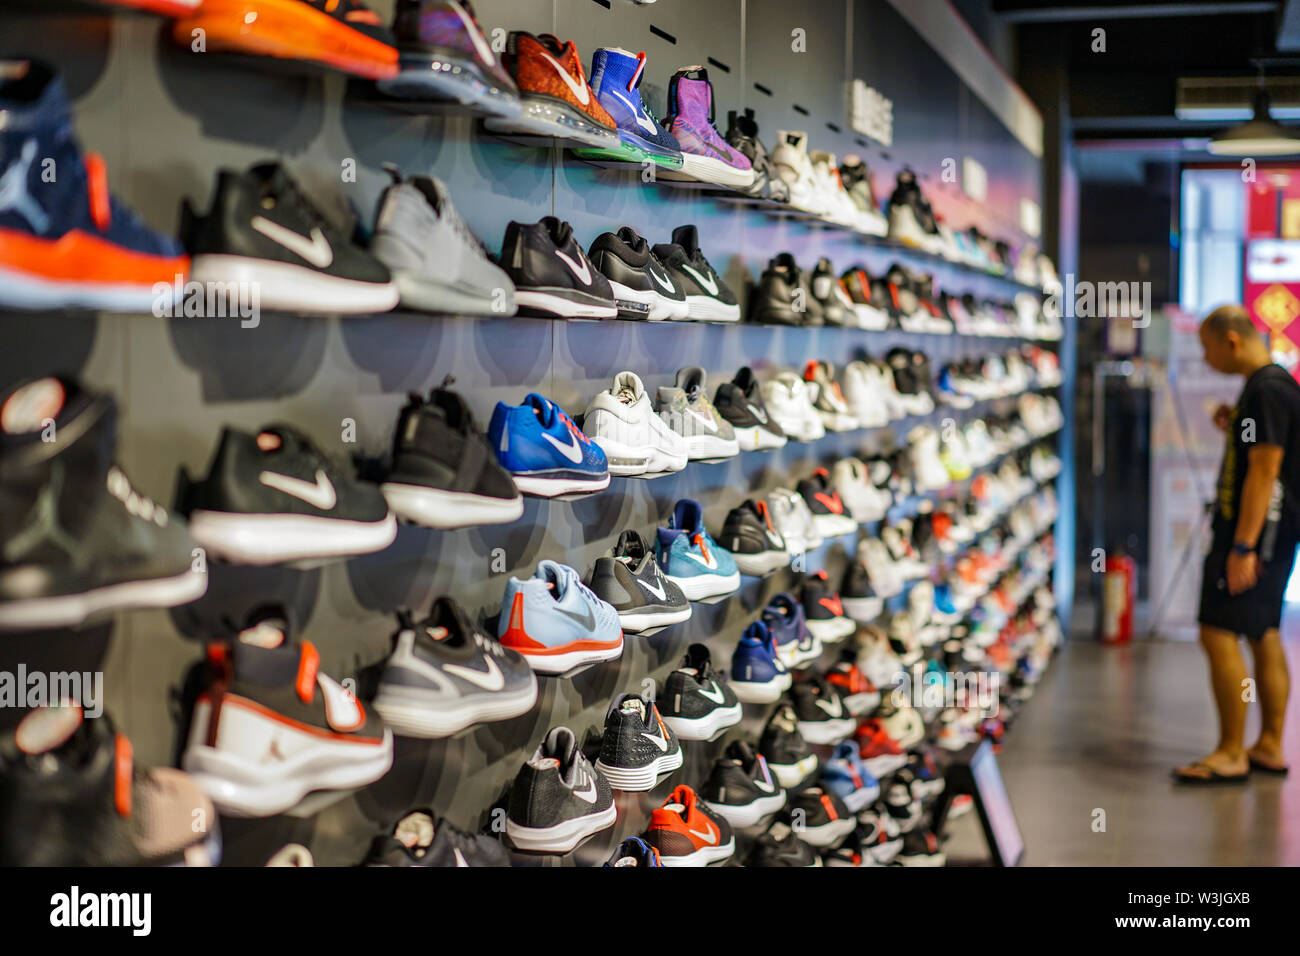 14c8b205f8 Nike Sport Shop Stock Photos & Nike Sport Shop Stock Images - Alamy